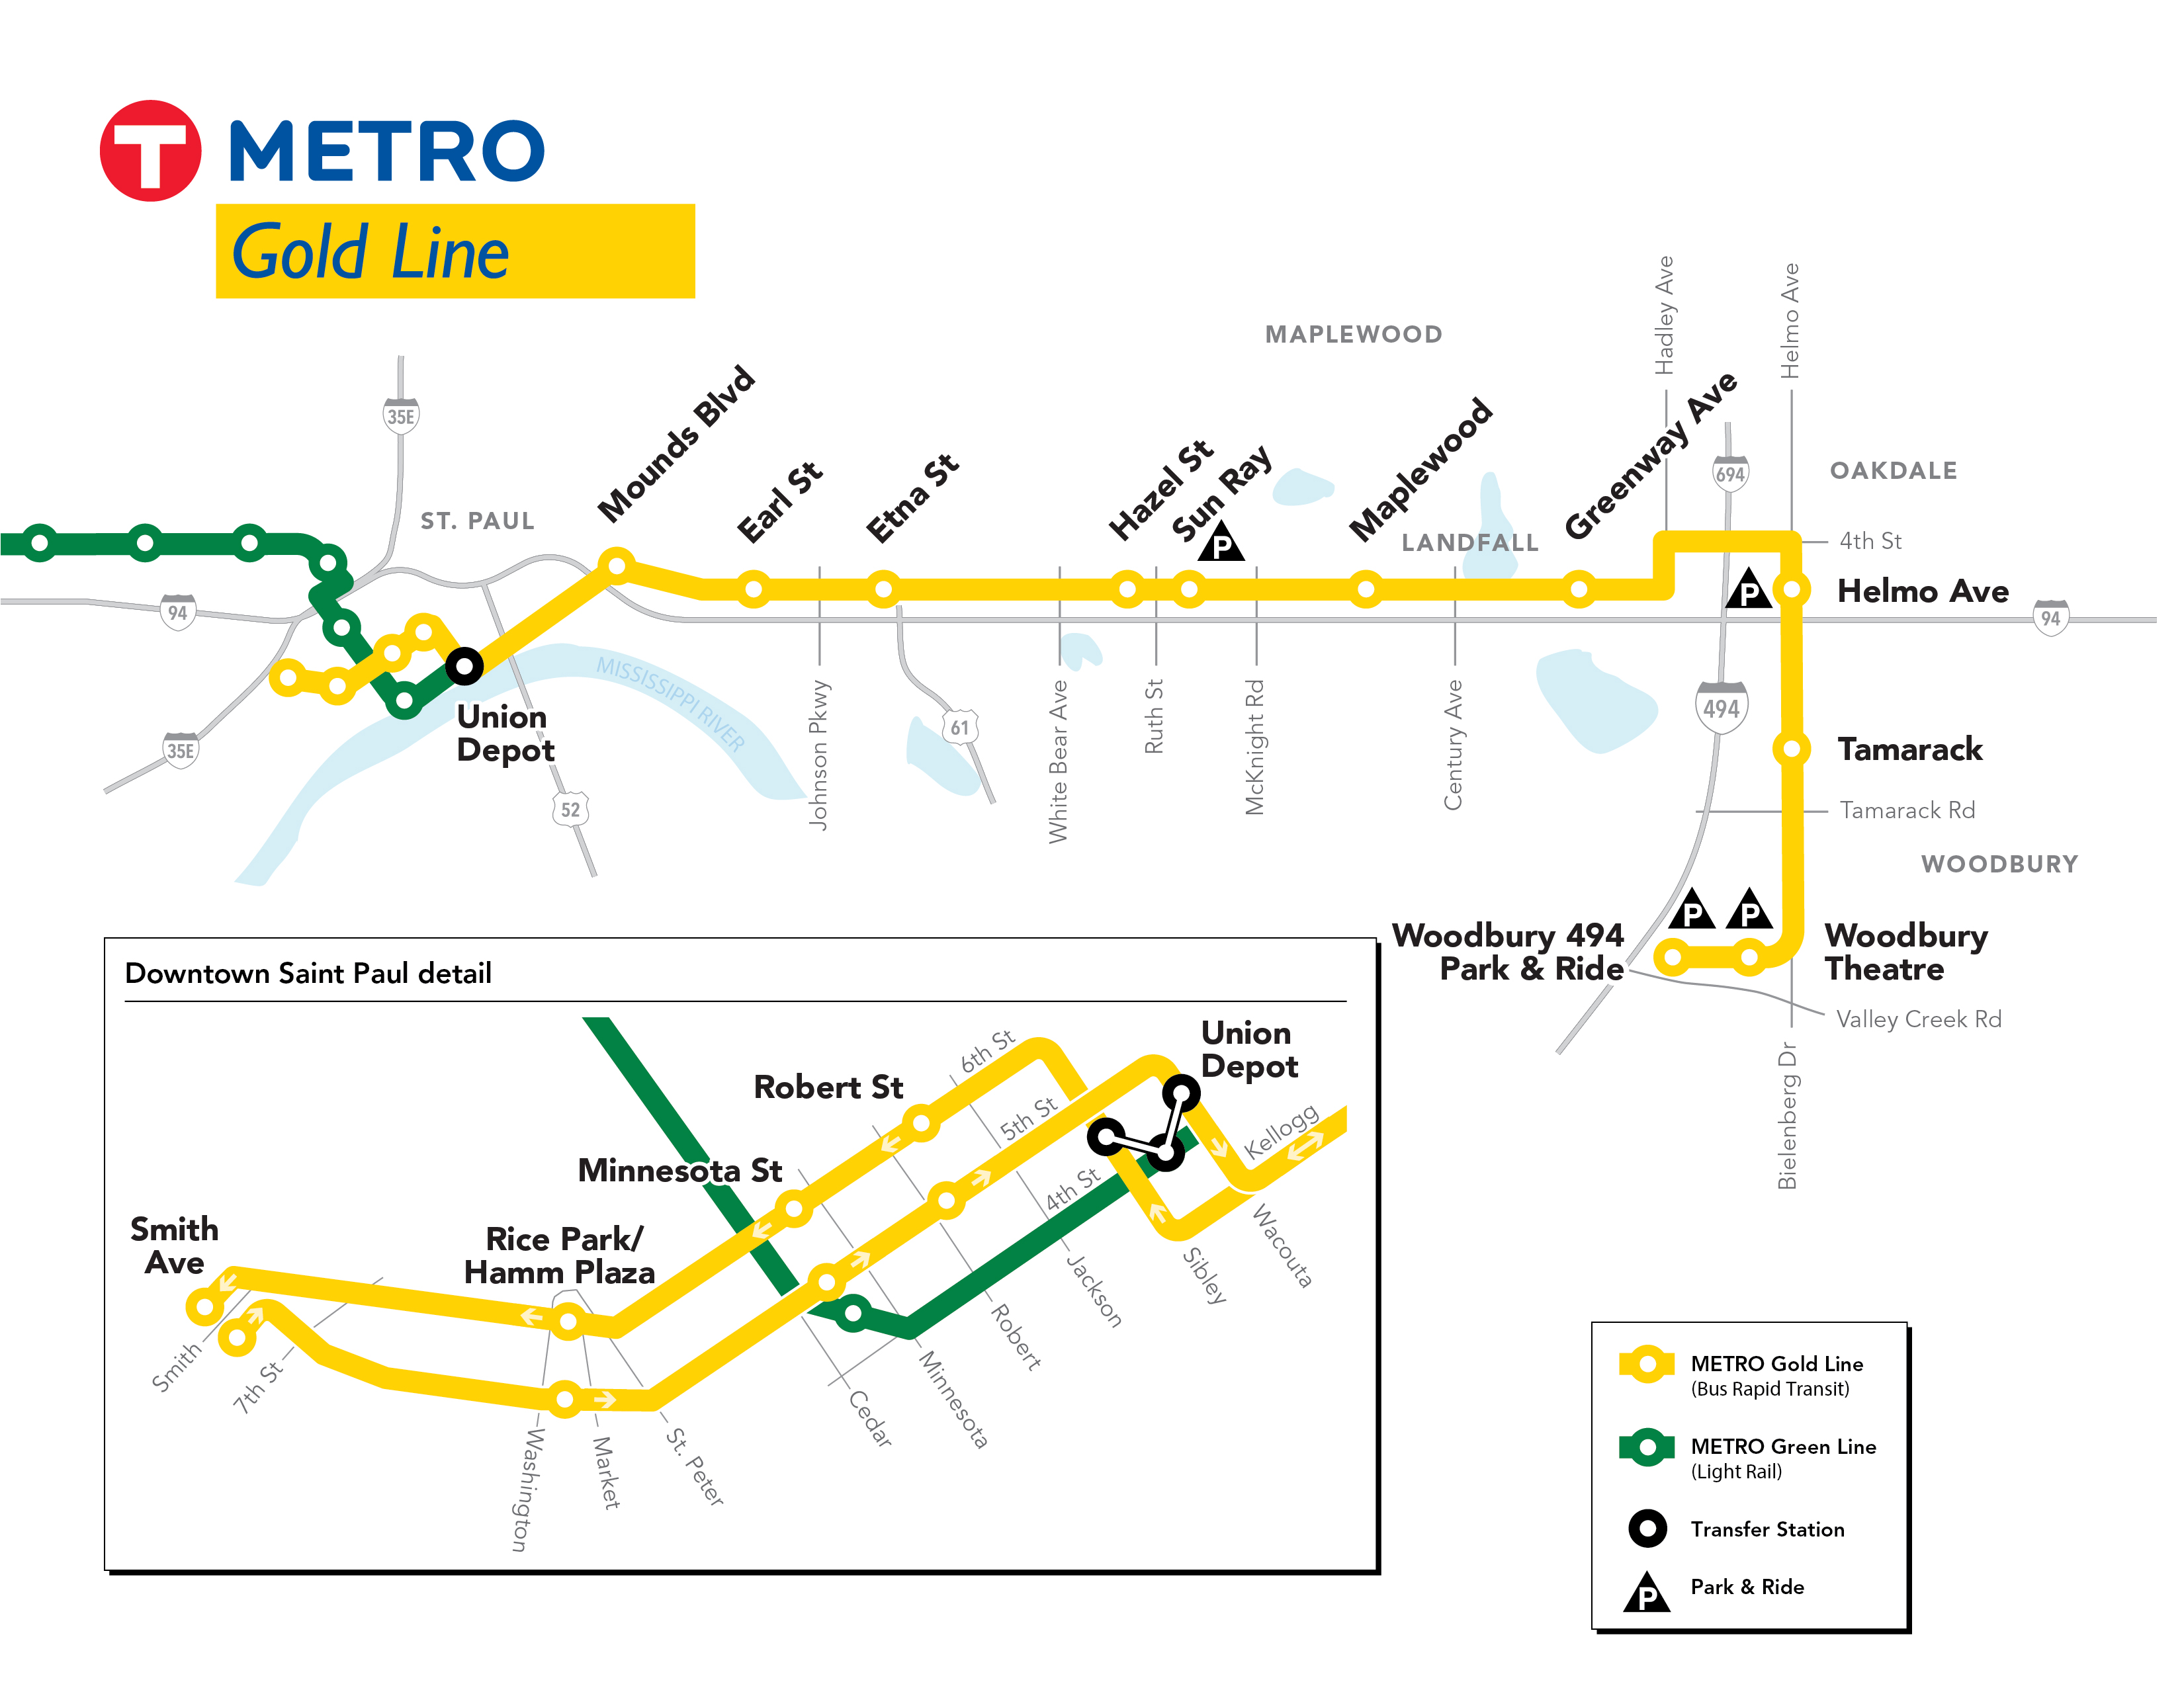 The Gold Line will travel from St. Paul to Woodbury and have 21 stations.